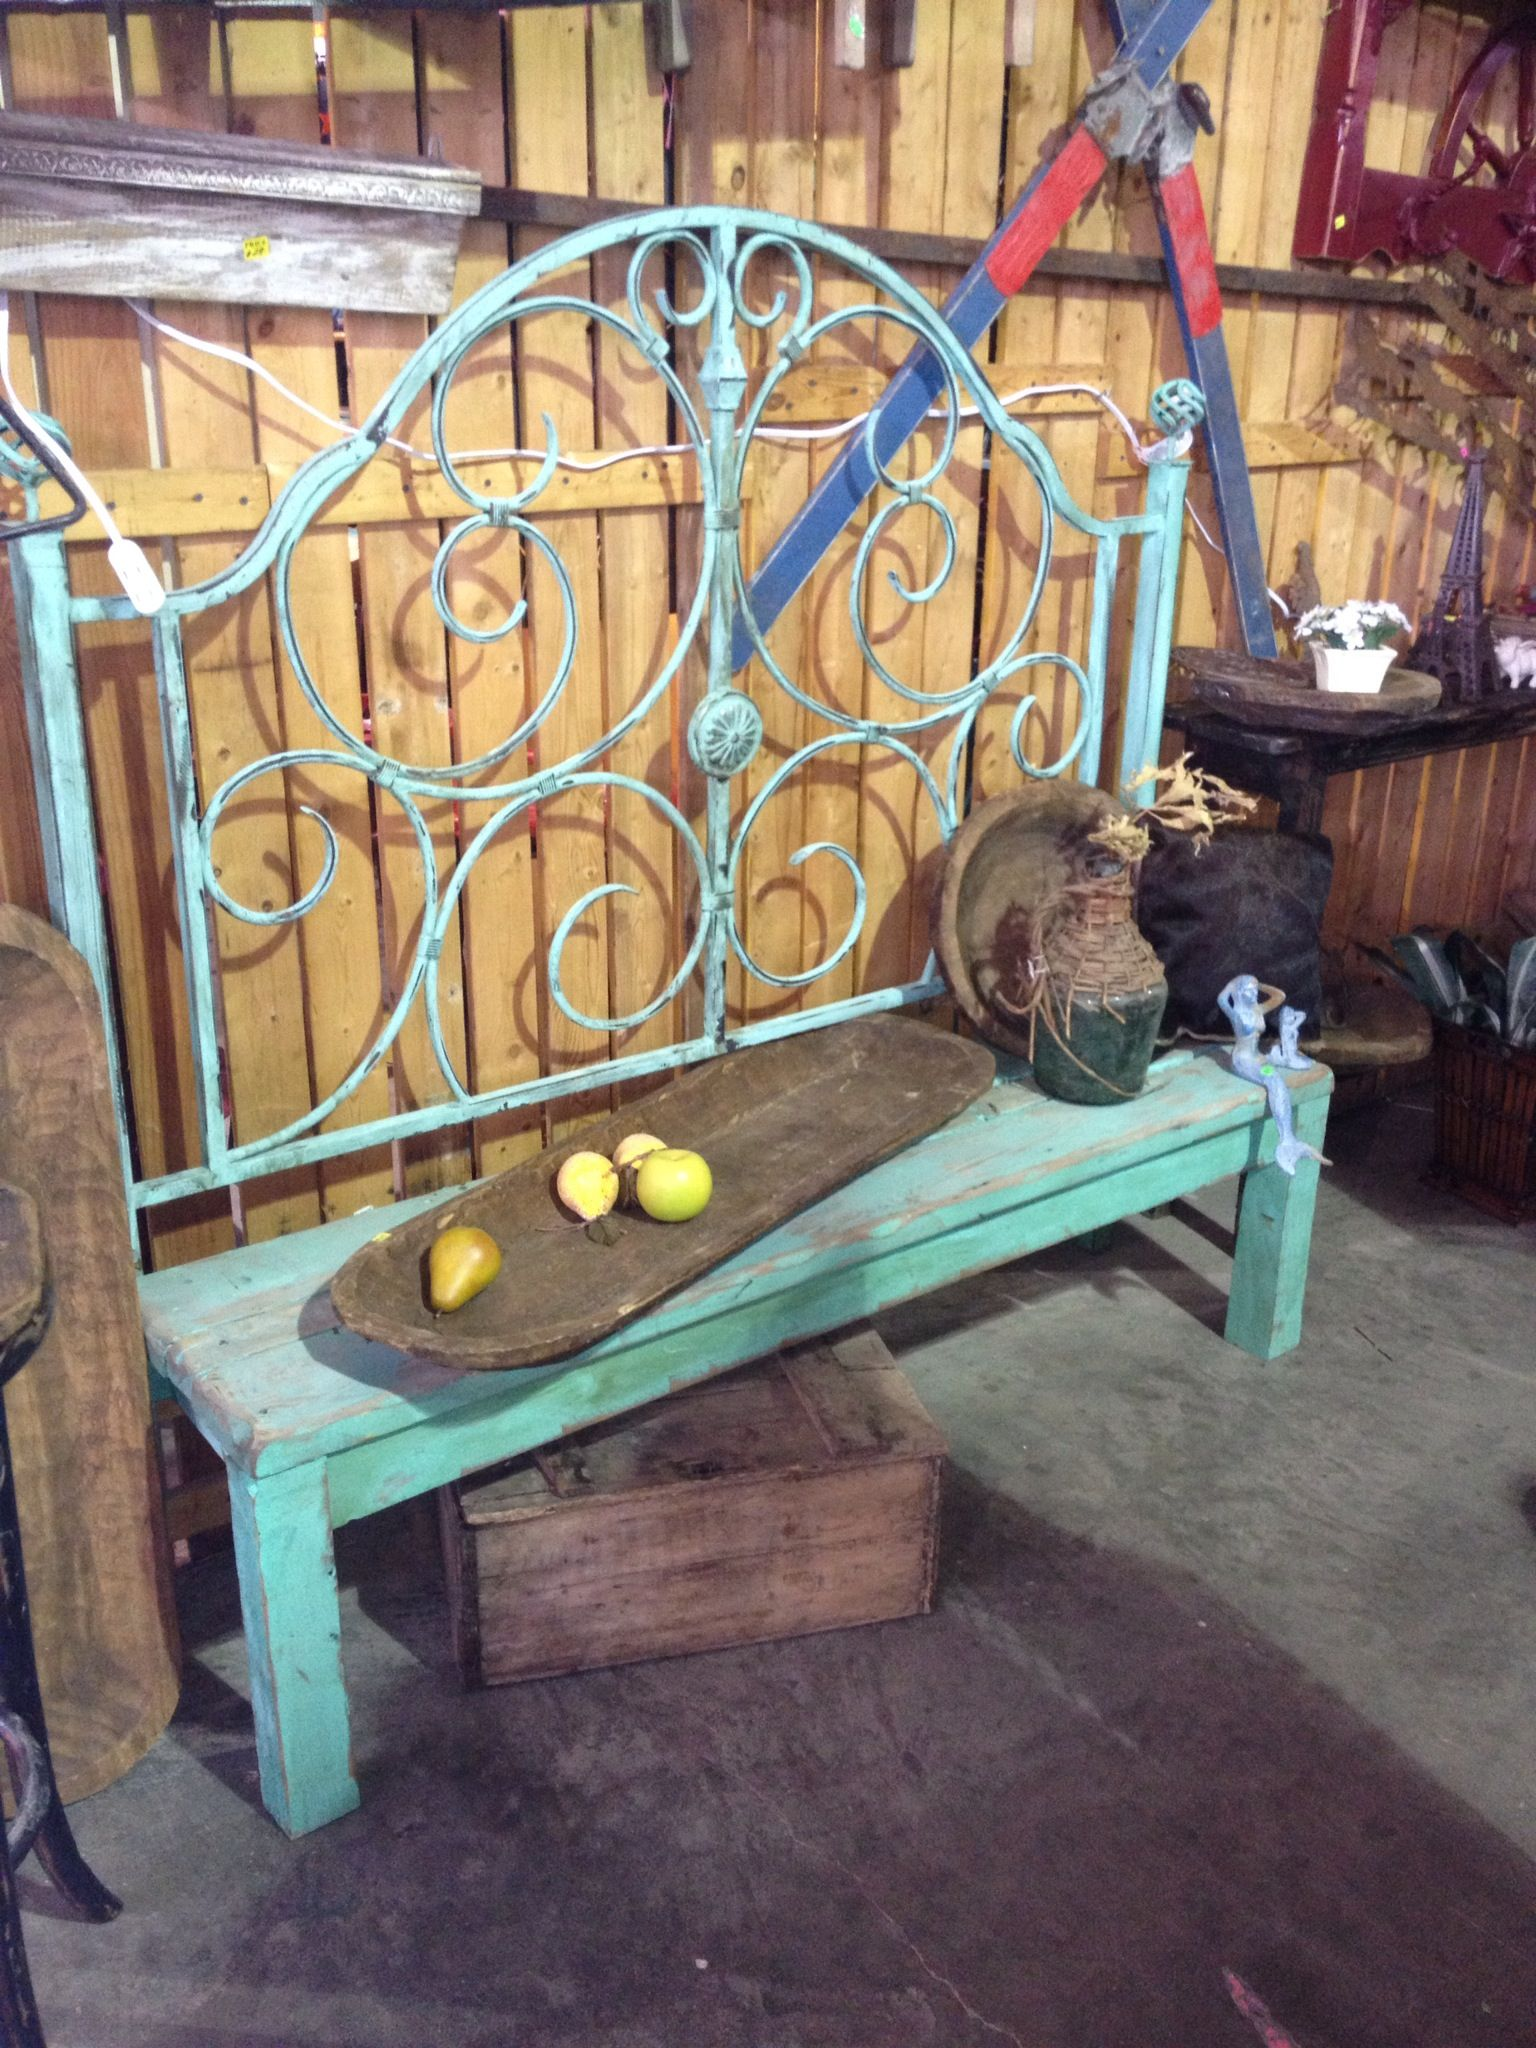 Swell Love This Bench Made From A Bed Headboard D K Antiques Short Links Chair Design For Home Short Linksinfo